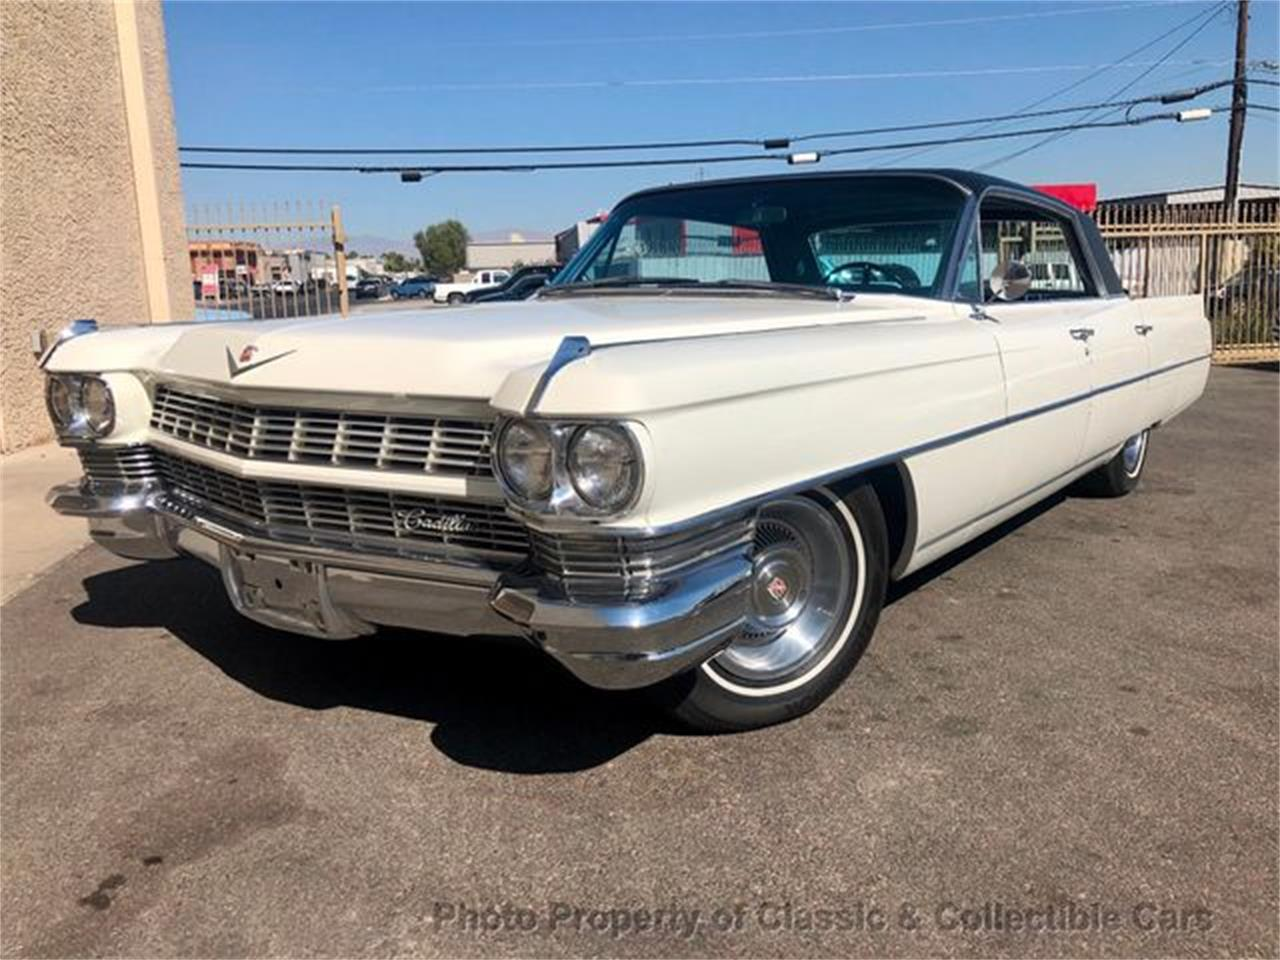 1964 Cadillac Sedan DeVille (CC-1414683) for sale in Las Vegas, Nevada